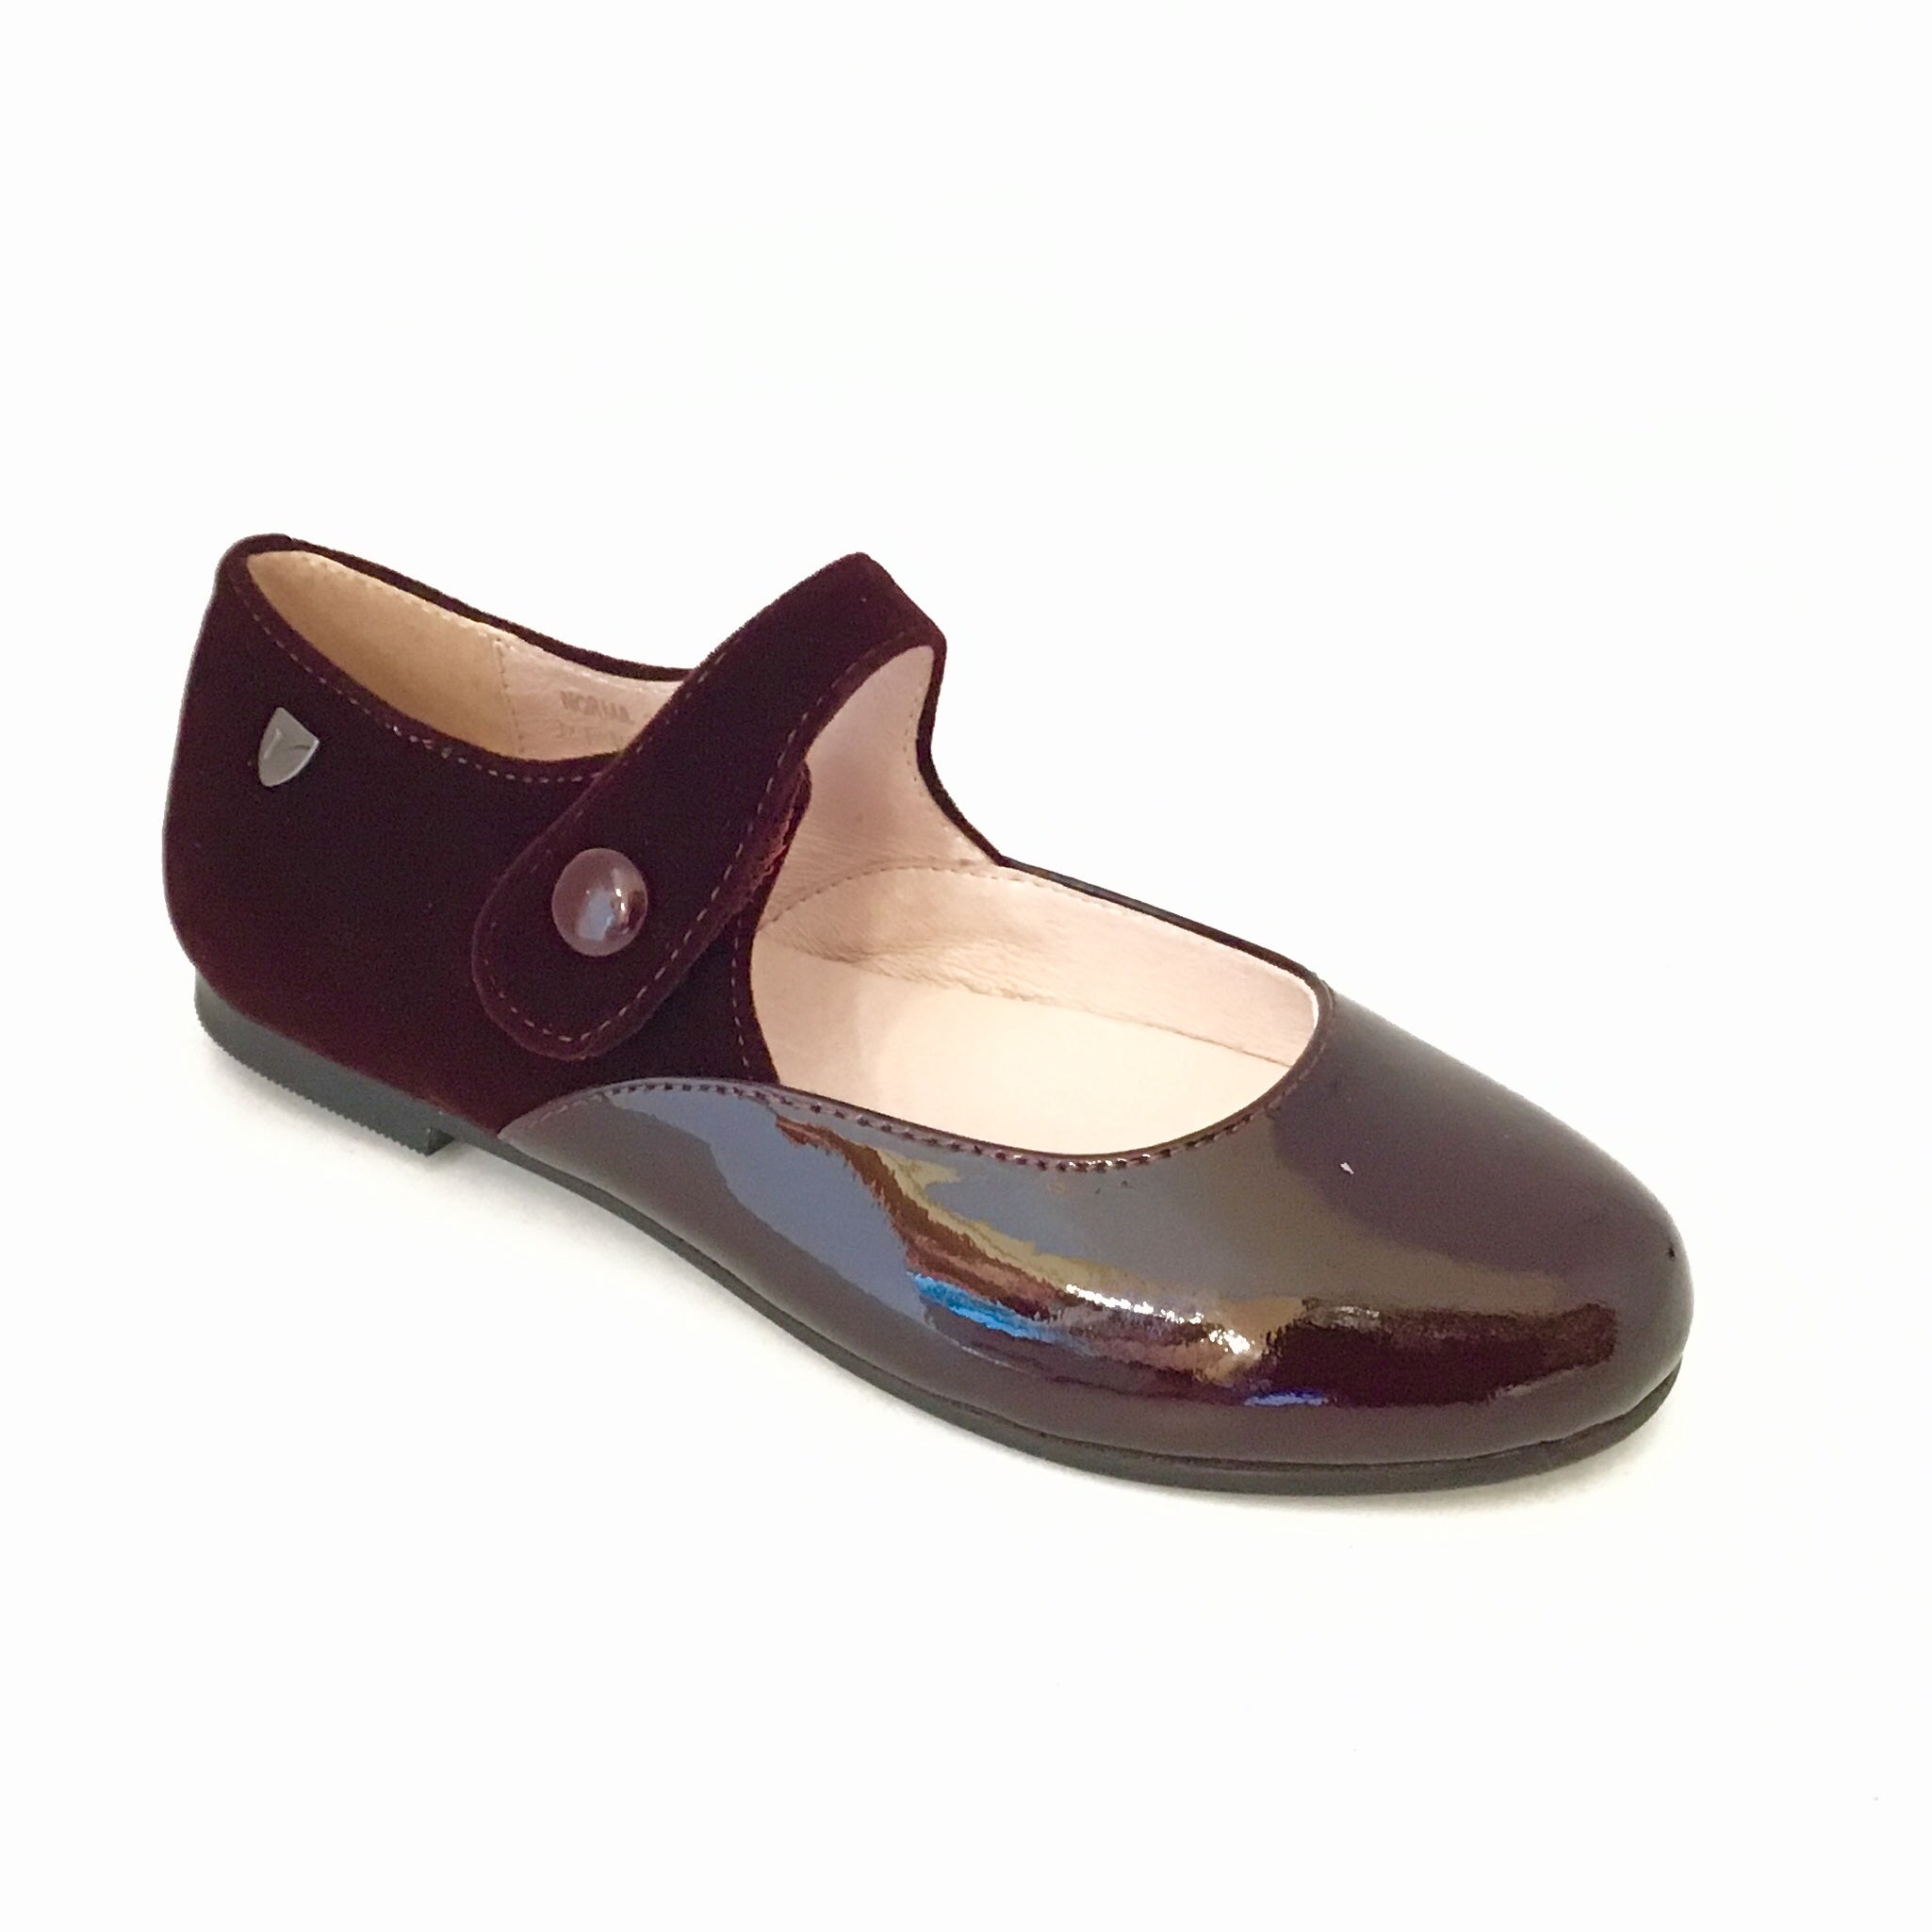 Venettini Bordeaux Patent and Velvet Mary Jane